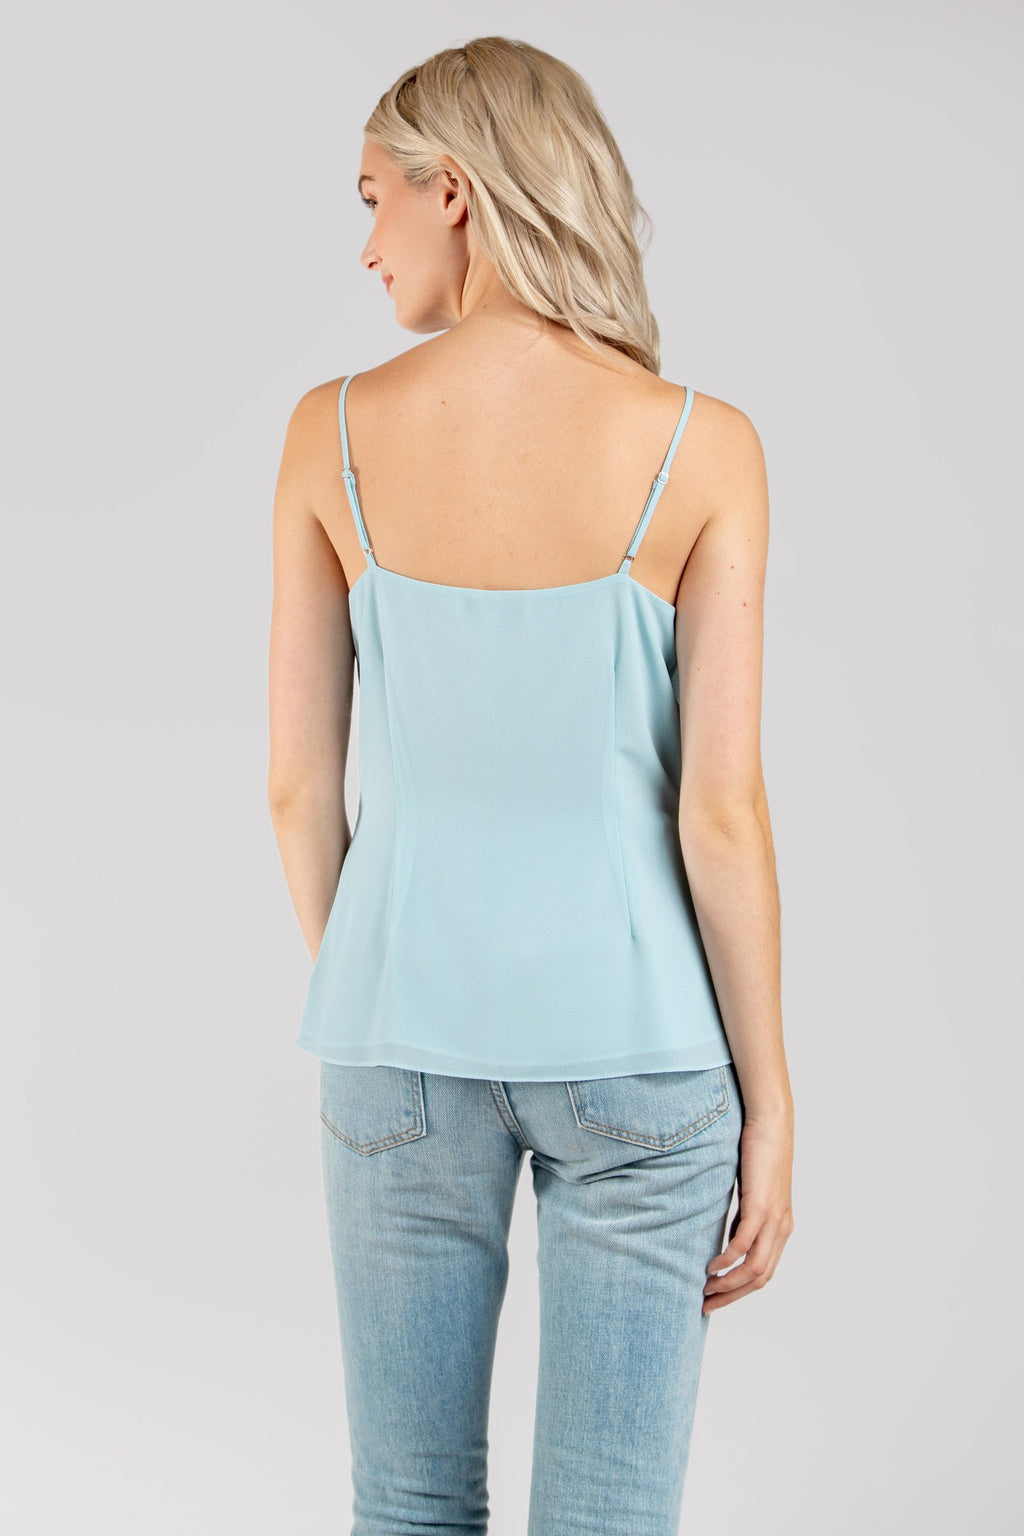 Cool Blue Front Twist Cami Top with Lace